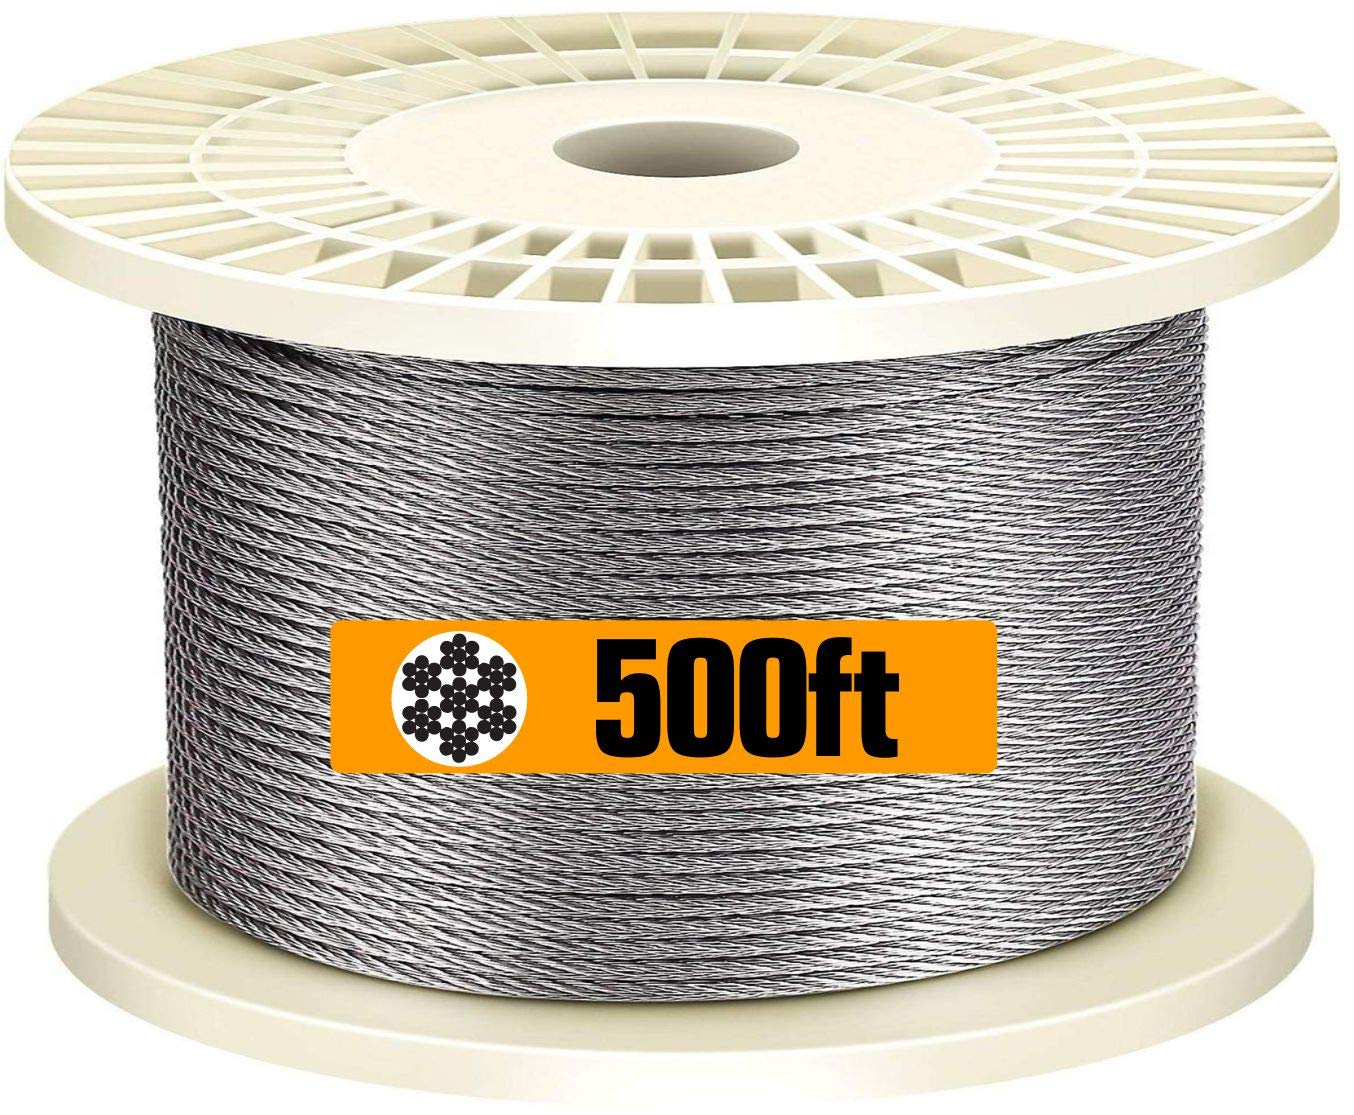 T316-Stainless Steel 1/8 Aircraft Wire Rope for Cable Railing Kit,Marine Grade(500ft)